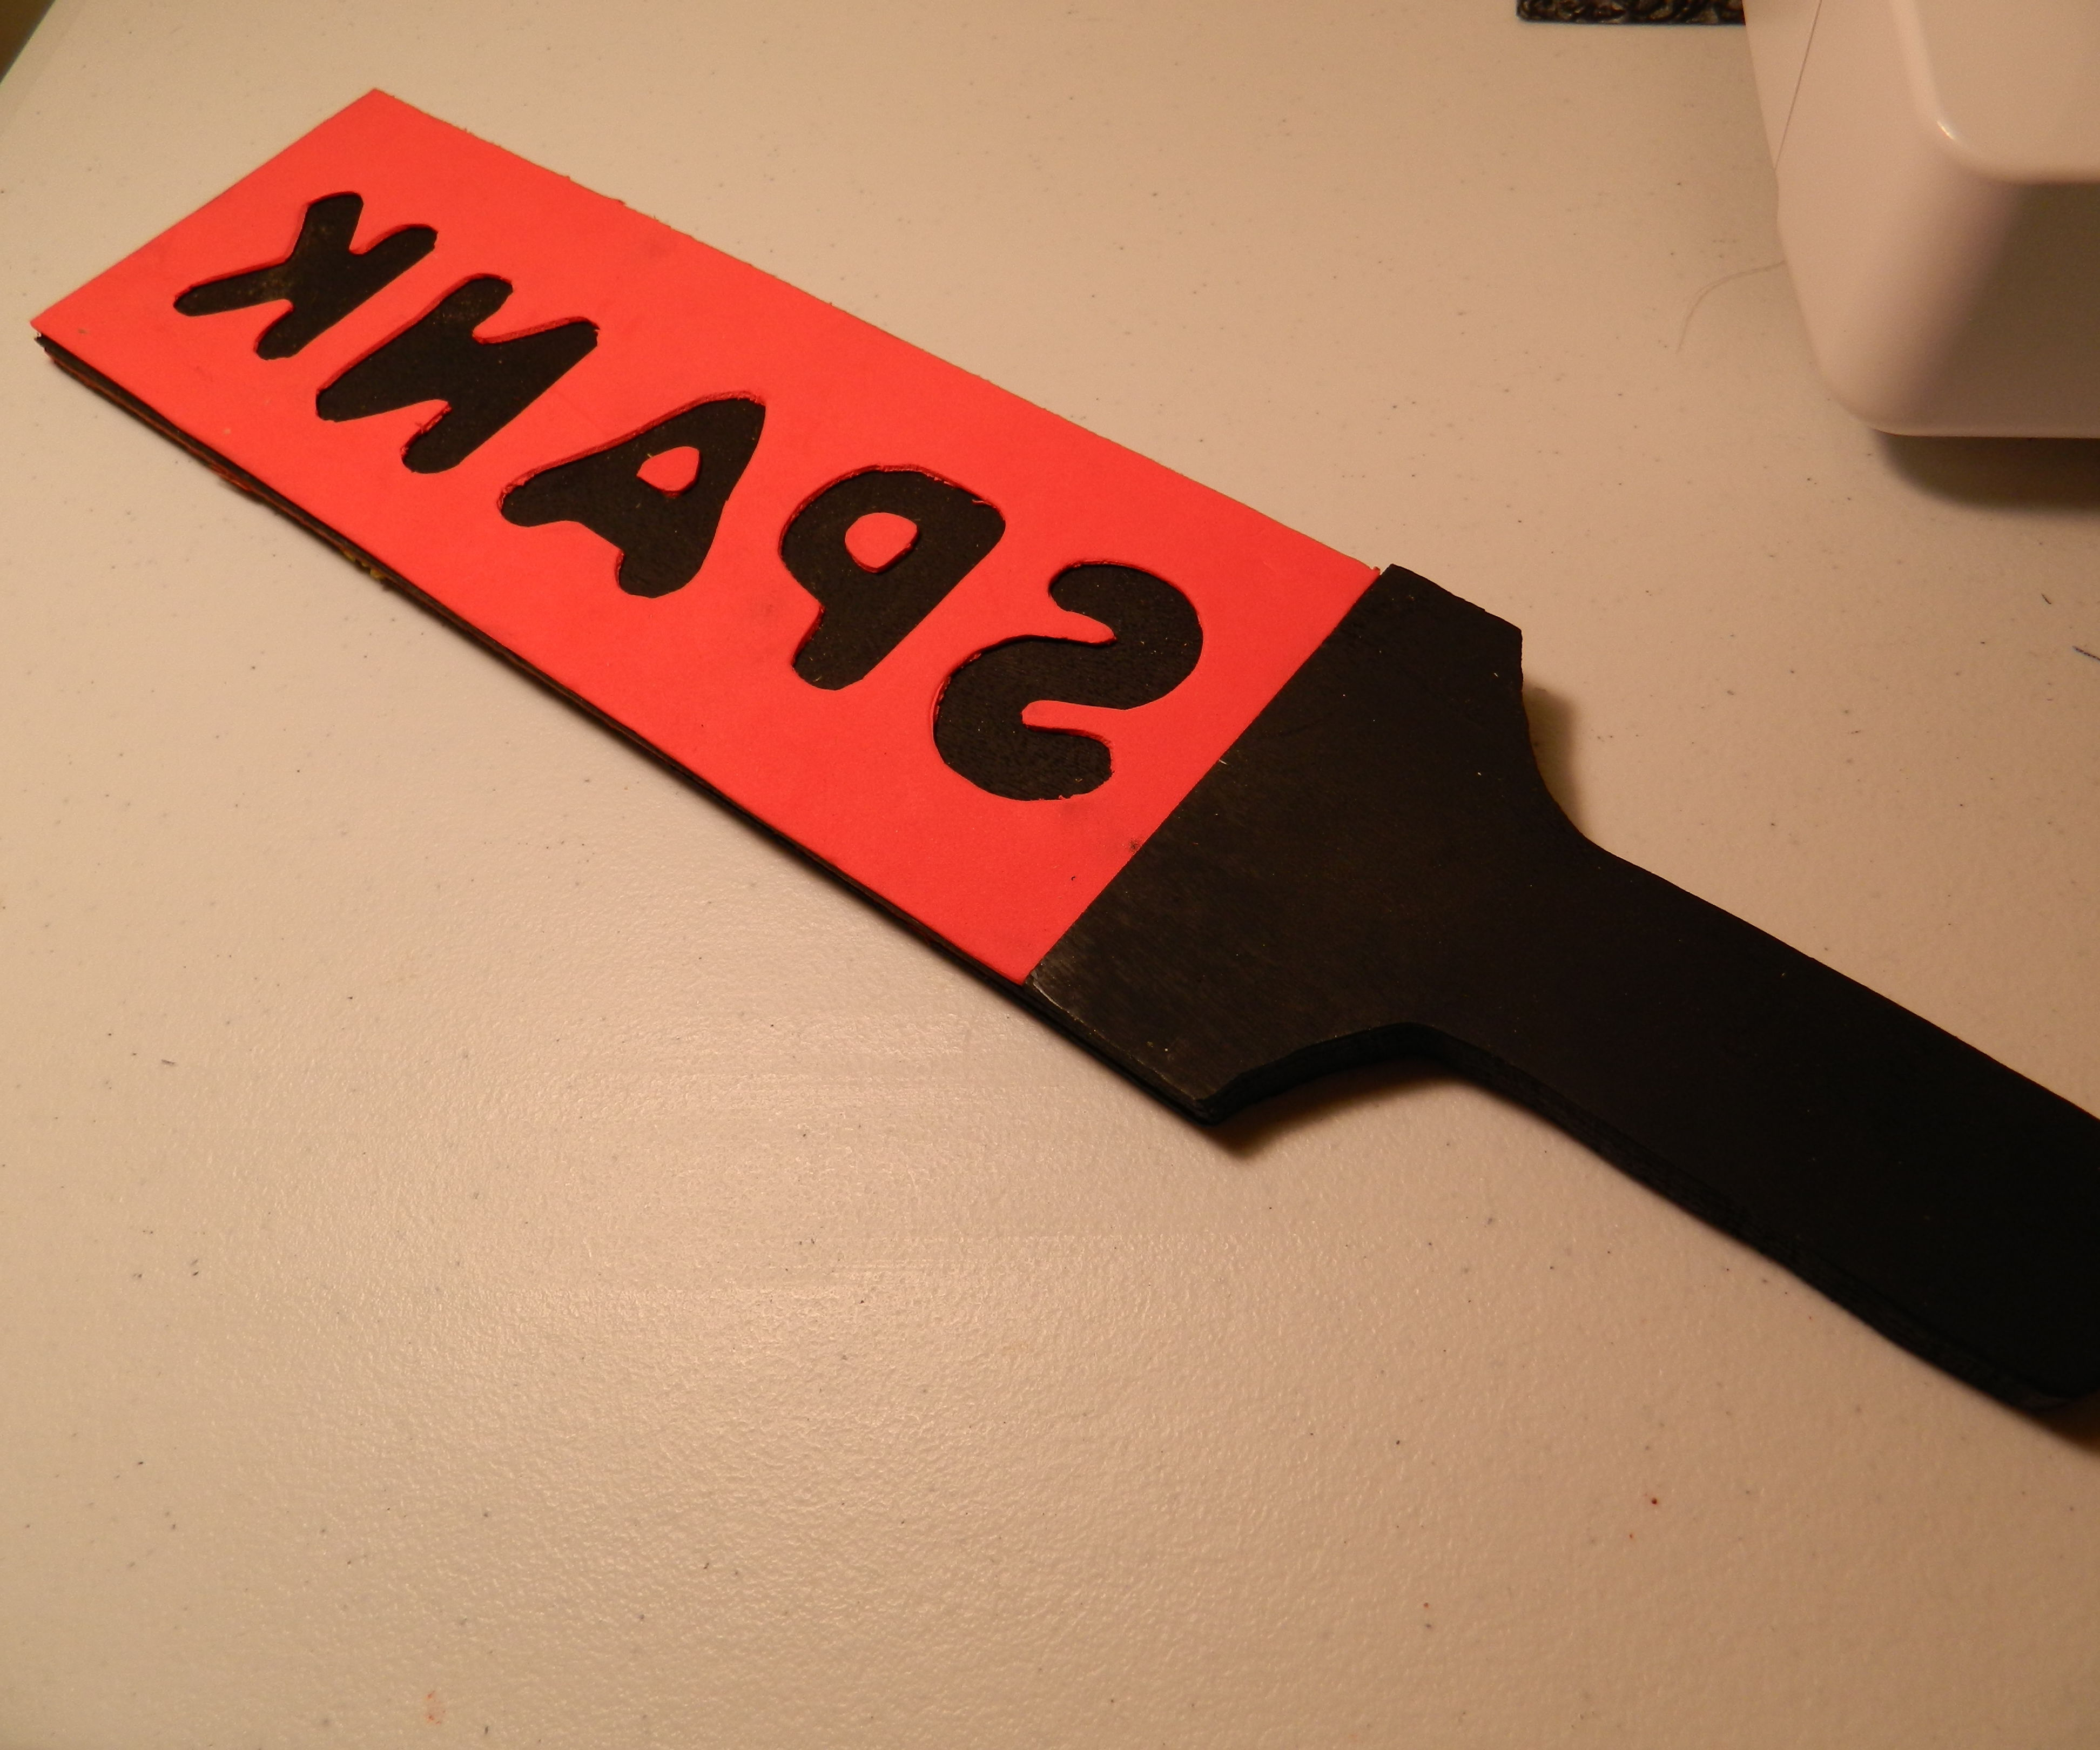 Homemade Paddle, or, How to Make an Impression